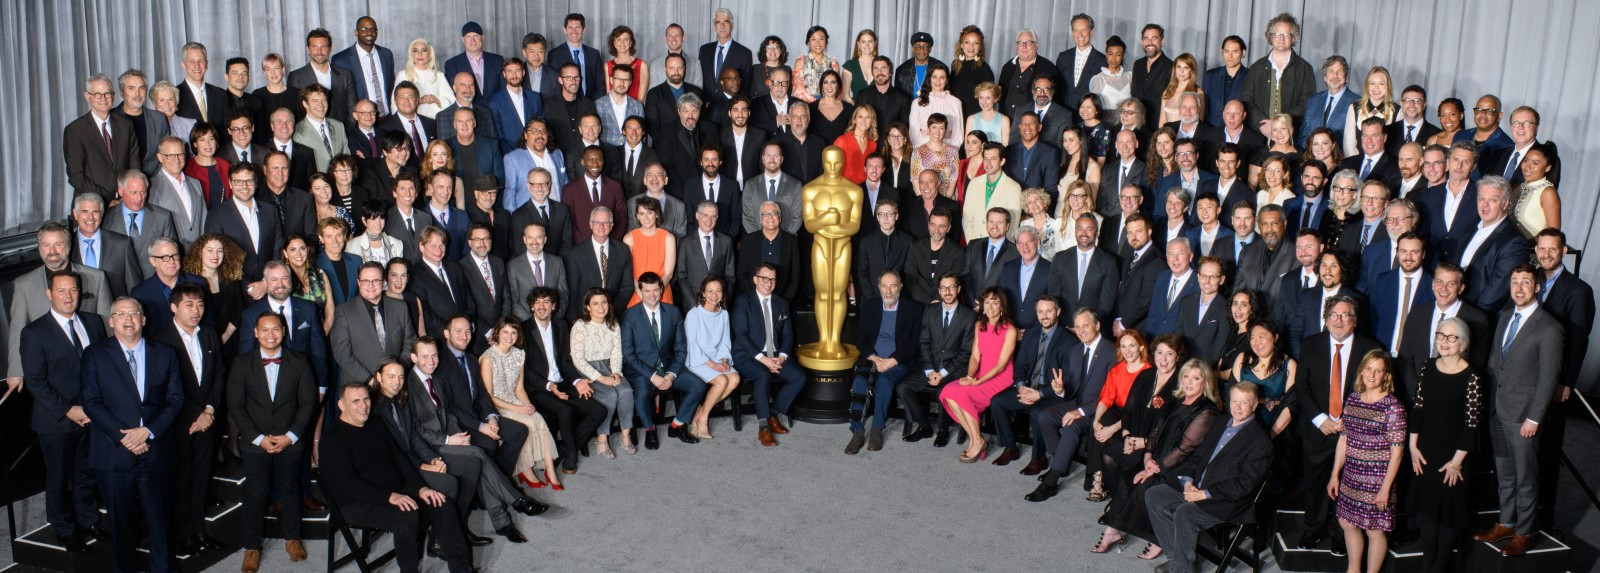 oscar-nominees-photo-2019